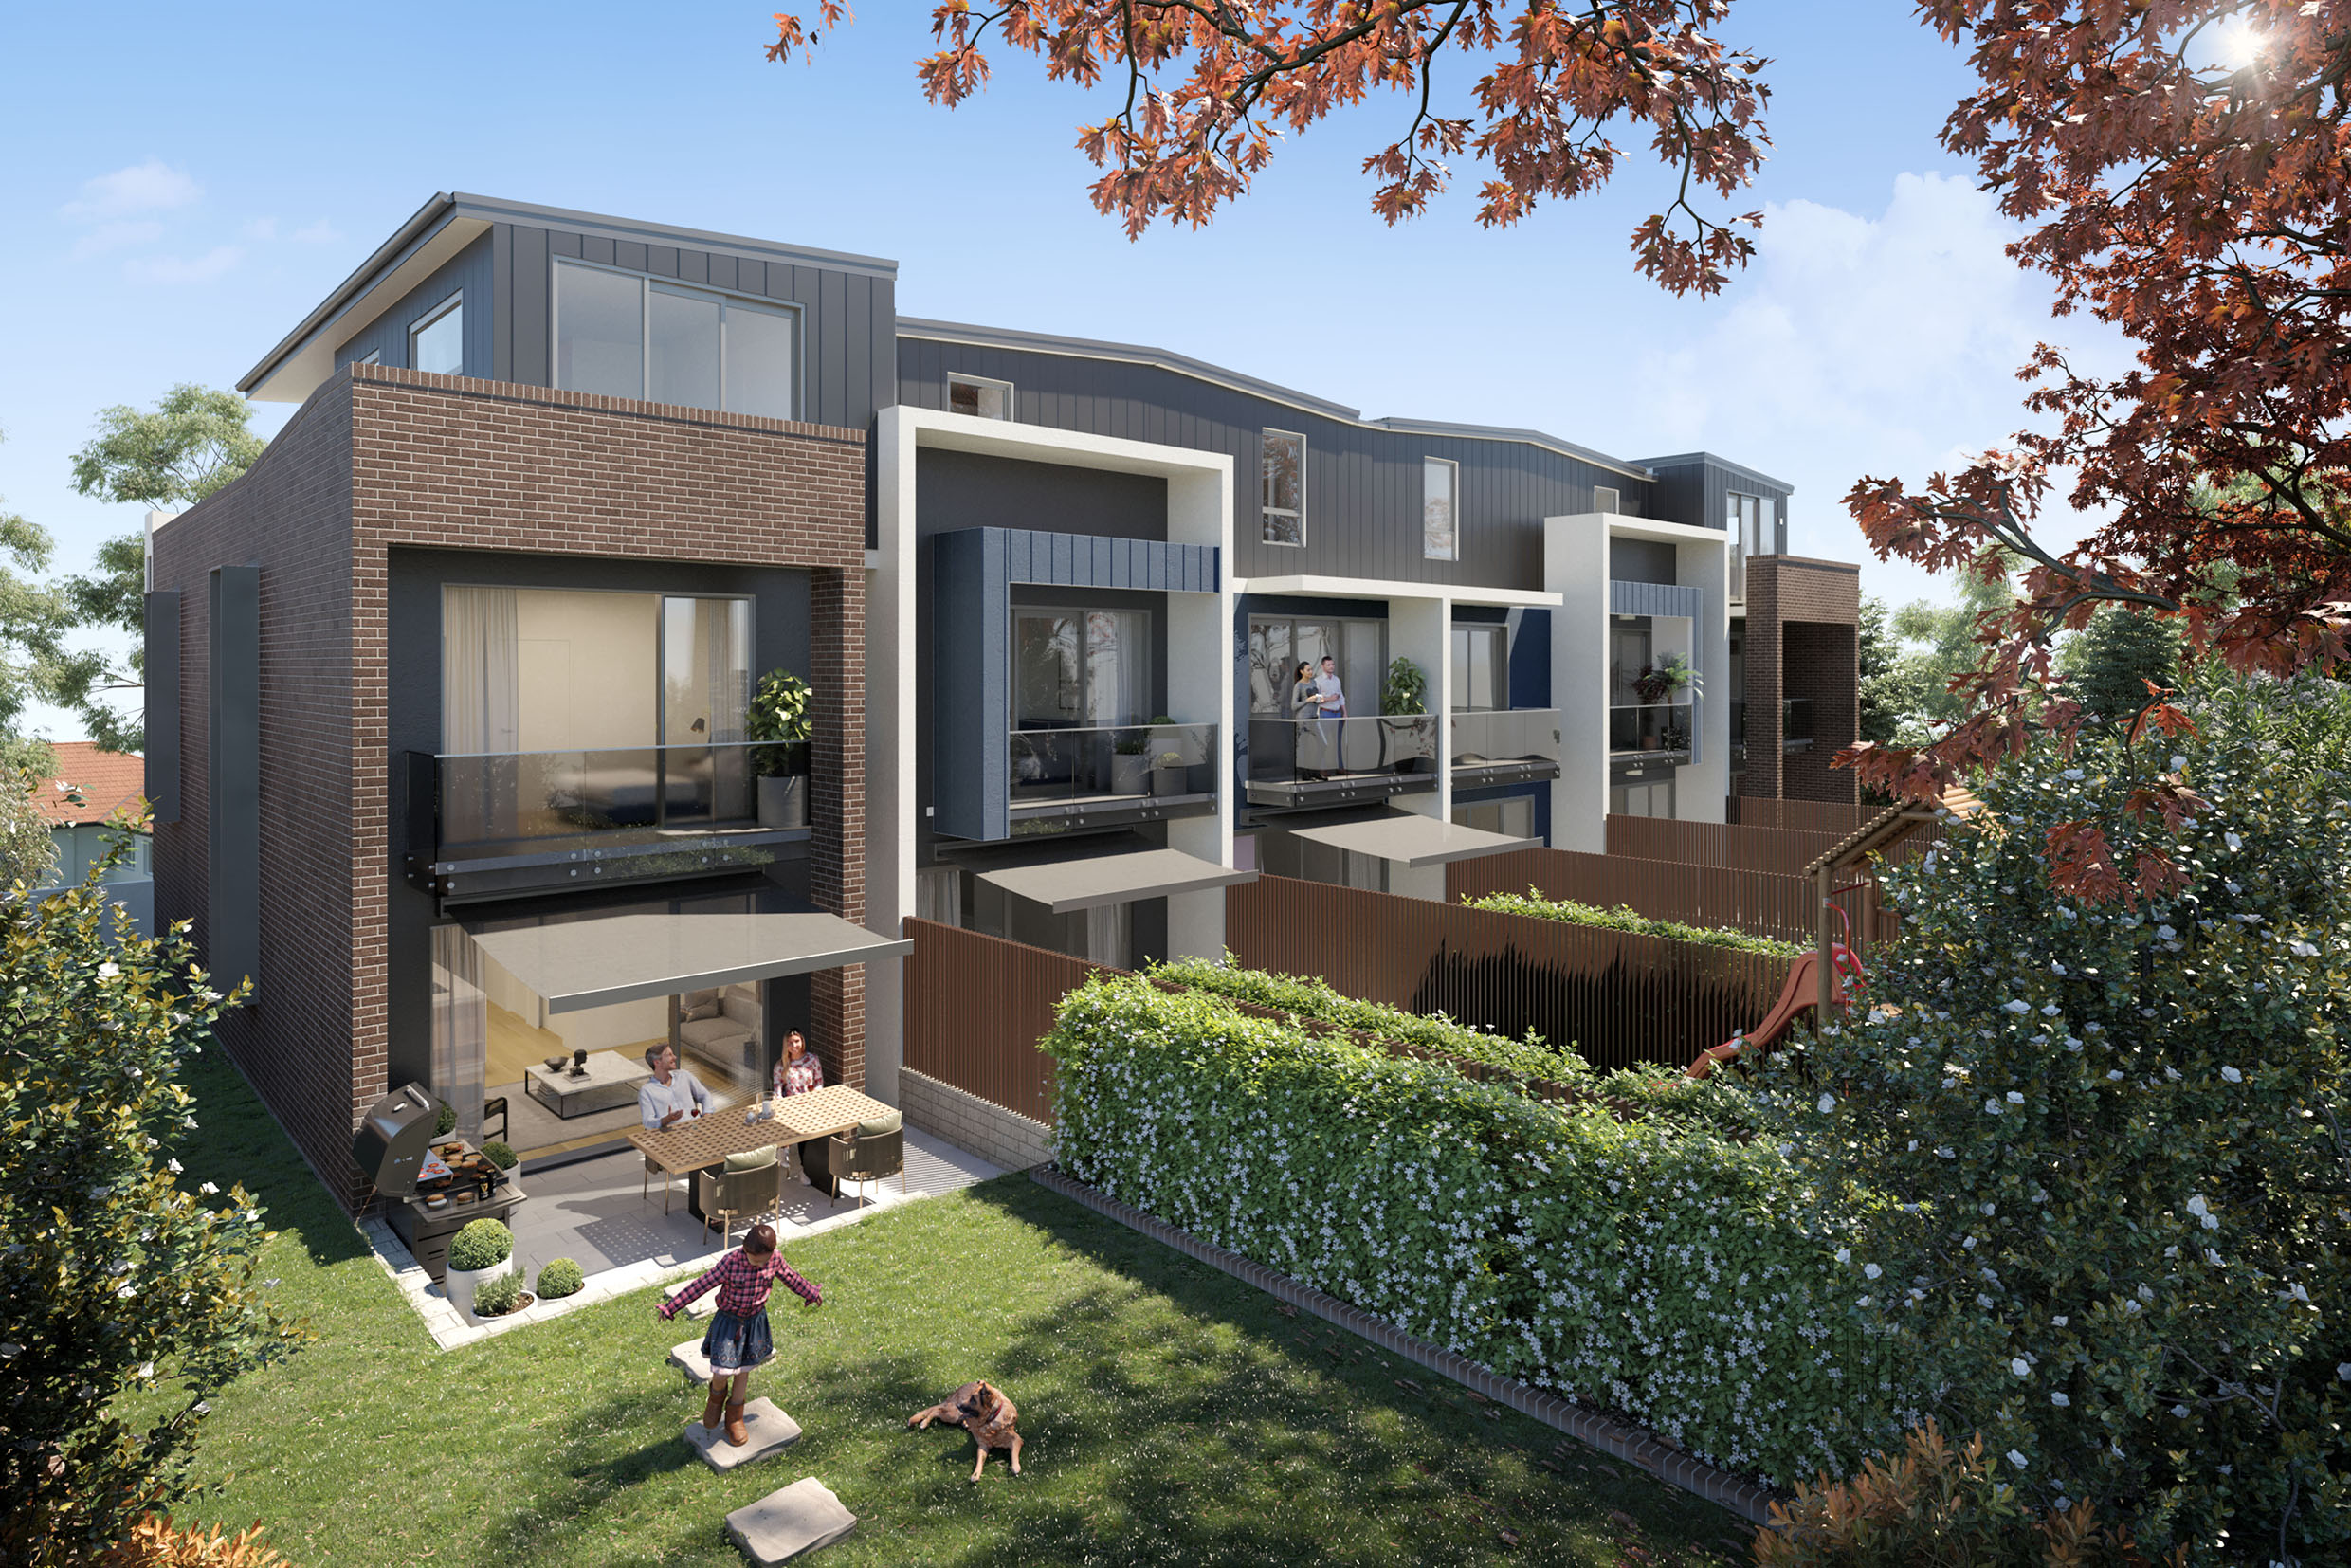 "Demand strong on Lower North Shore <span class=""pt_splitter pt_splitter-1"">despite COVID-19 with two $3m terraces<span class=""pt_splitter pt_splitter-2""> selling at WINIM's  'The Terraces' Willoughby</span></span>"